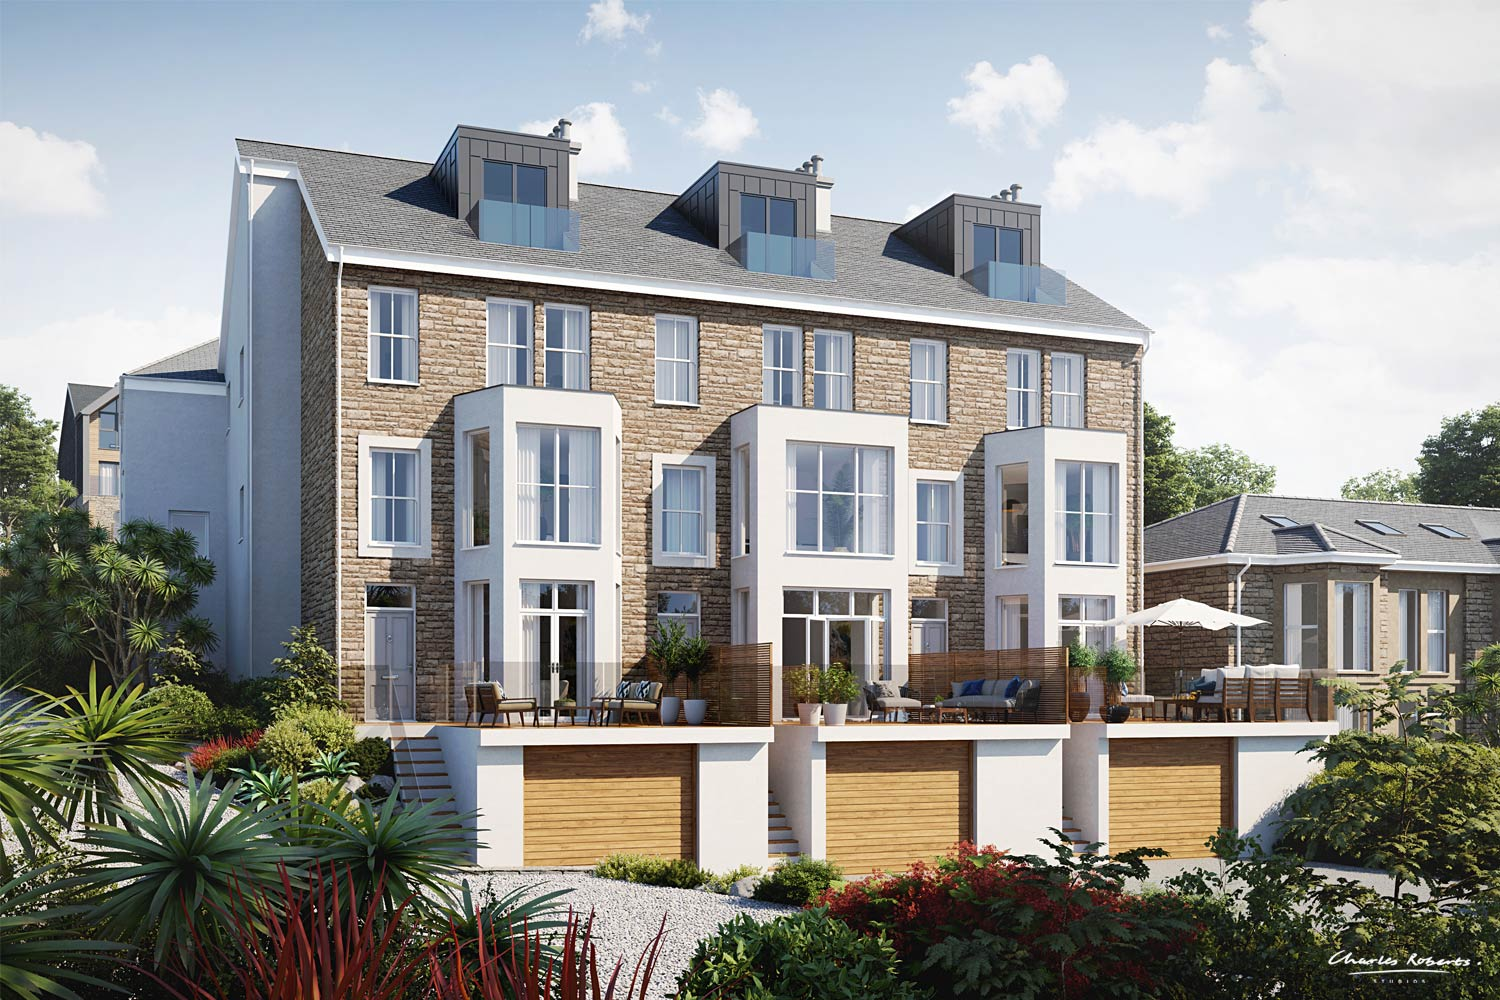 Artist impression of the hotel conversion and redevelopment